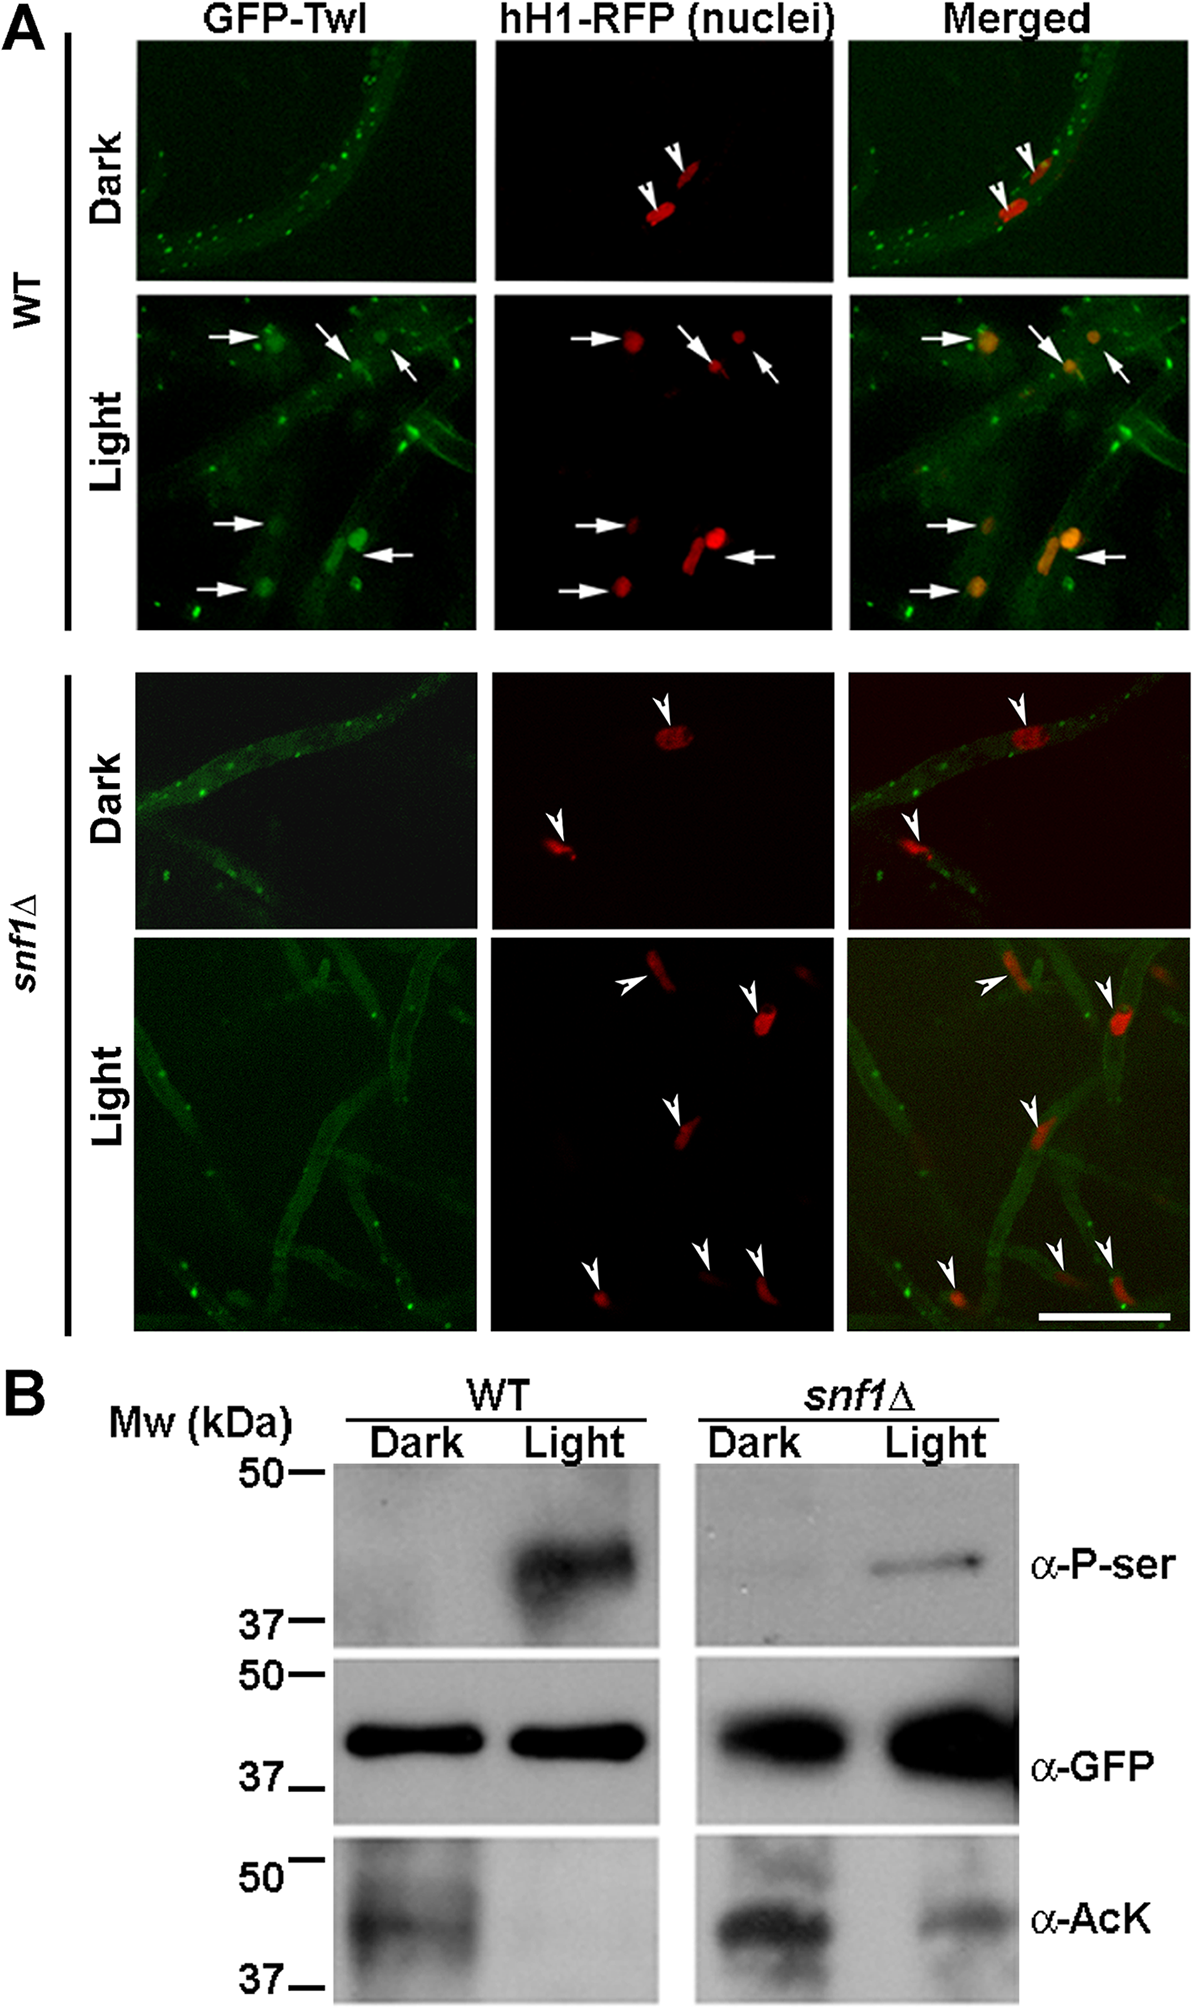 Snf1 kinase dependent phosphorylation drives the translocation of GFP-Twl into the nucleus in response to phototropic cues.